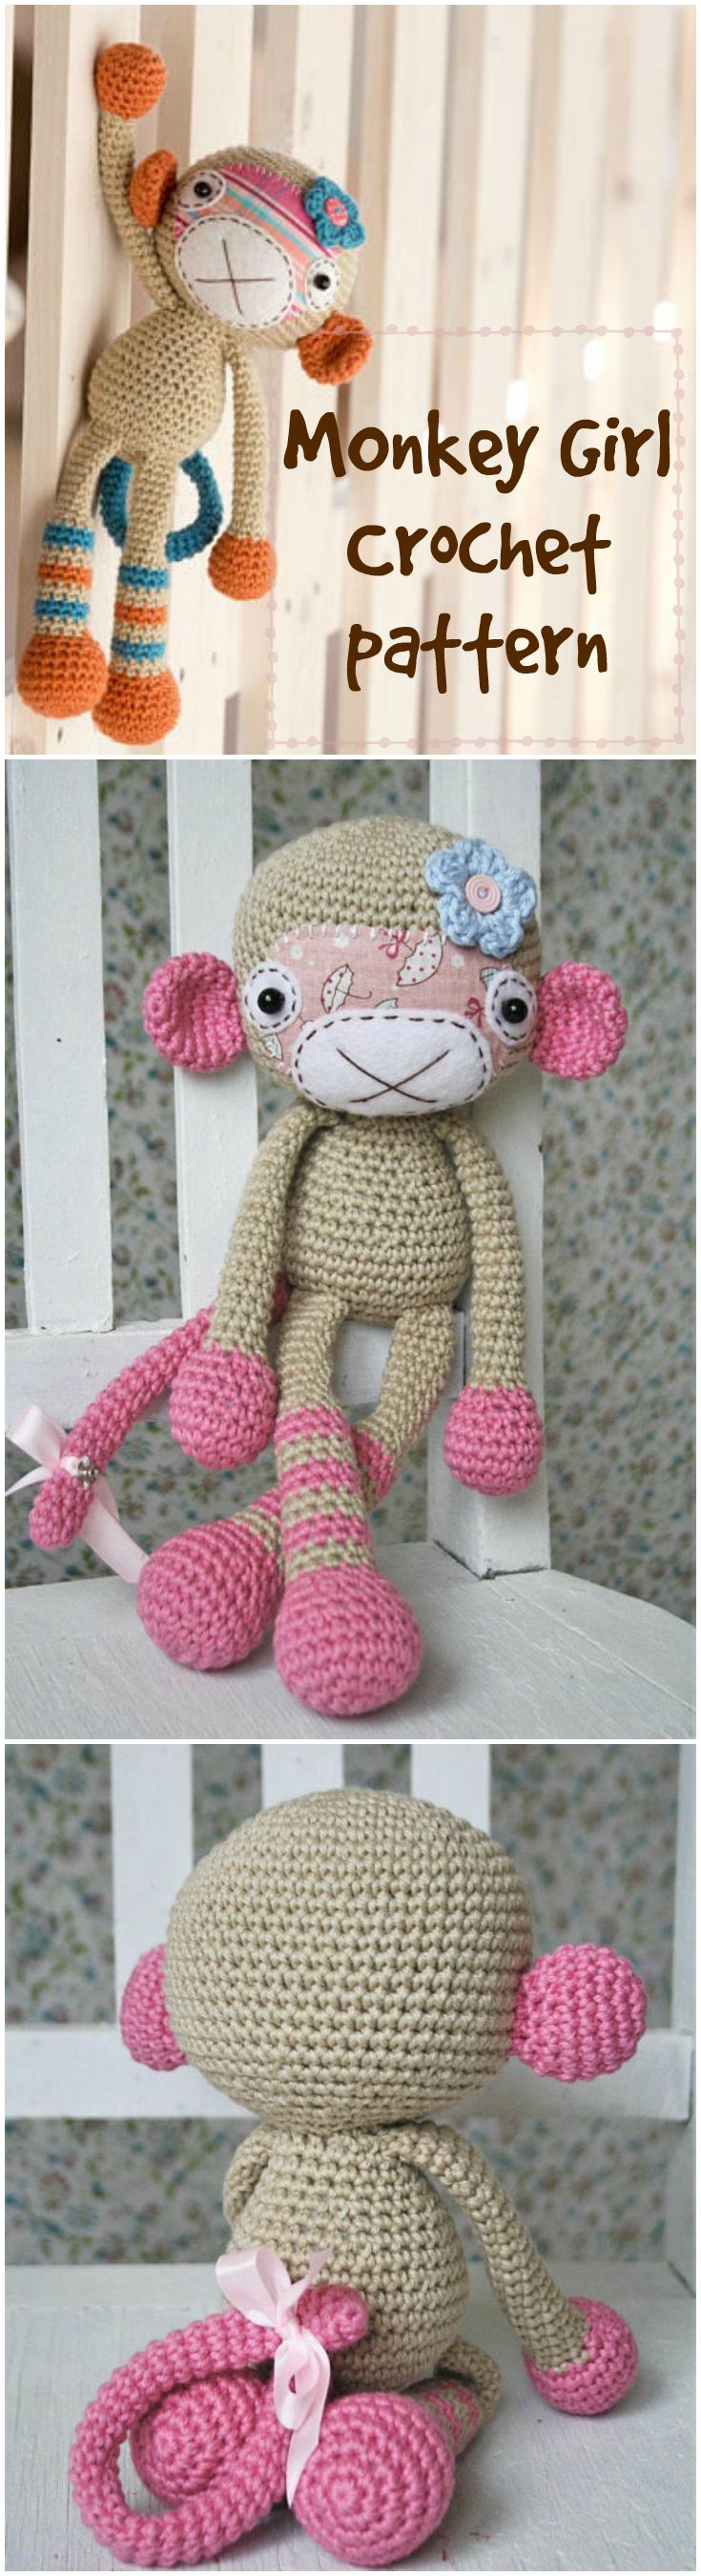 Cute little monkey girl crochet pattern to make! Love this adorable monkey amigurumi. Perfect handmade gift for a new baby! #etsy #ad #pdf #crochet #pattern #instant #download